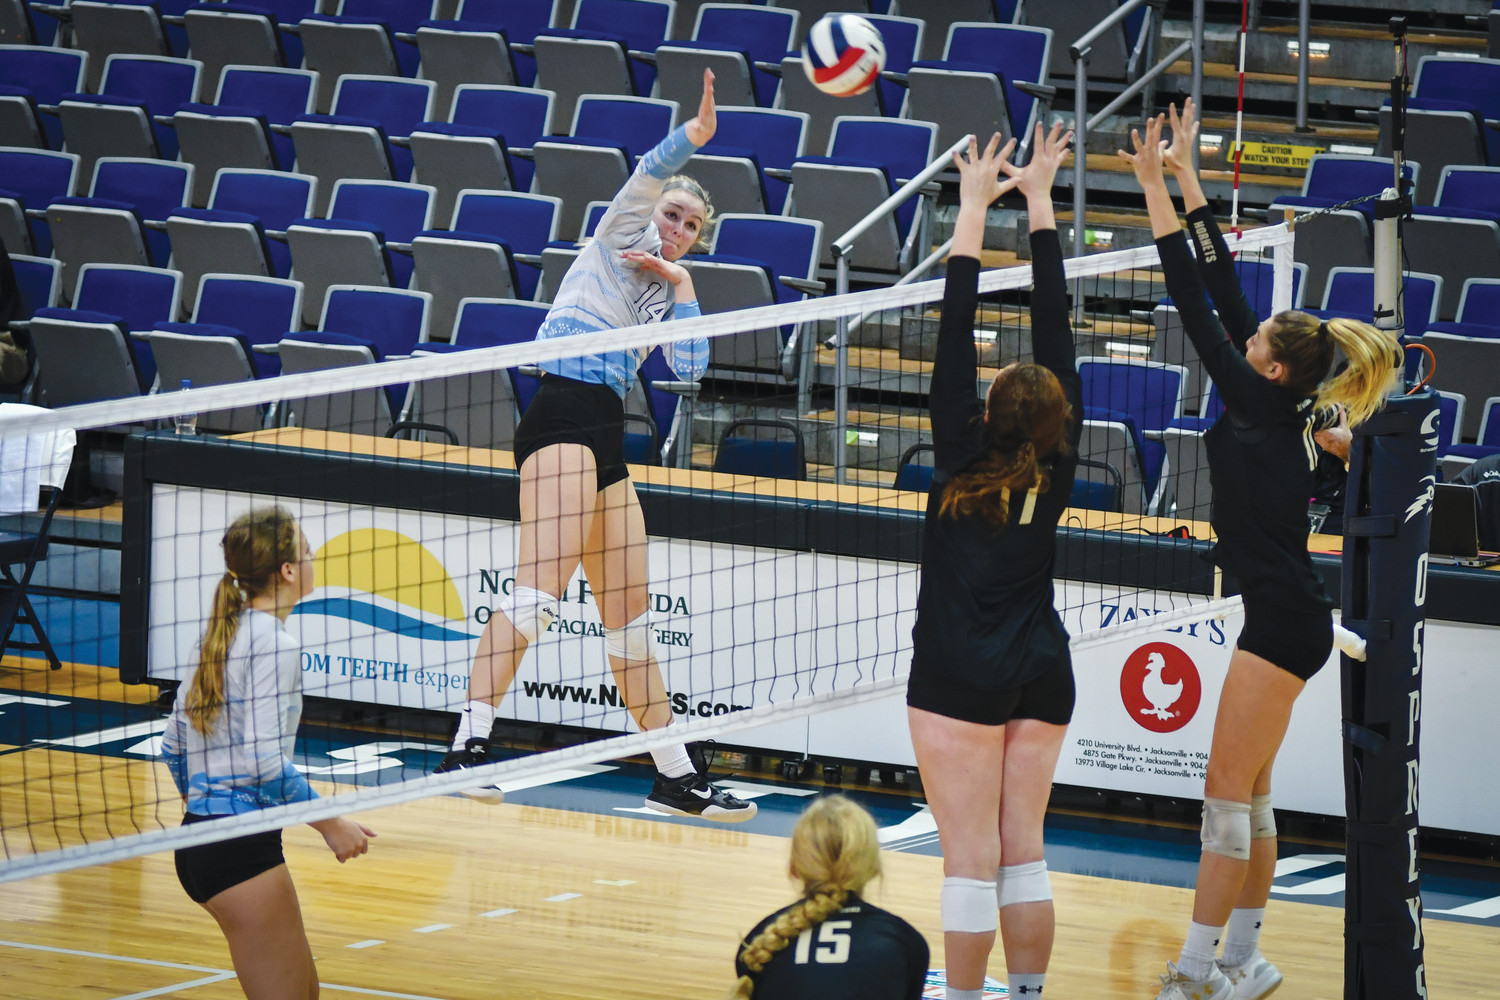 Paige Johnson, who finished the match with 12 kills, sends the ball over the net.